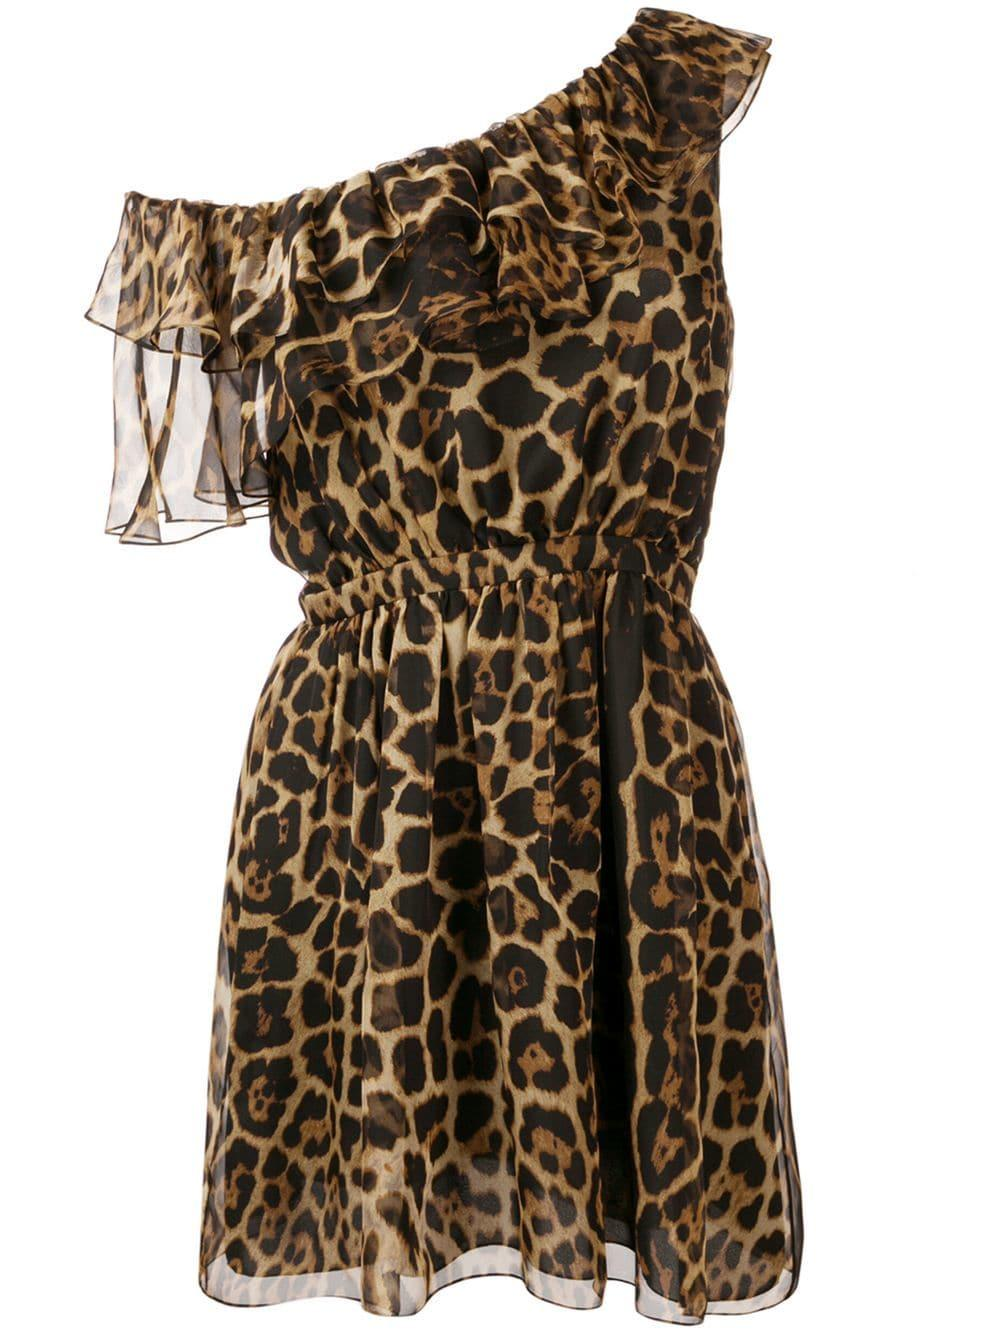 Drop Shoulder Leopard Print Short Dress Item # 572060Y820S